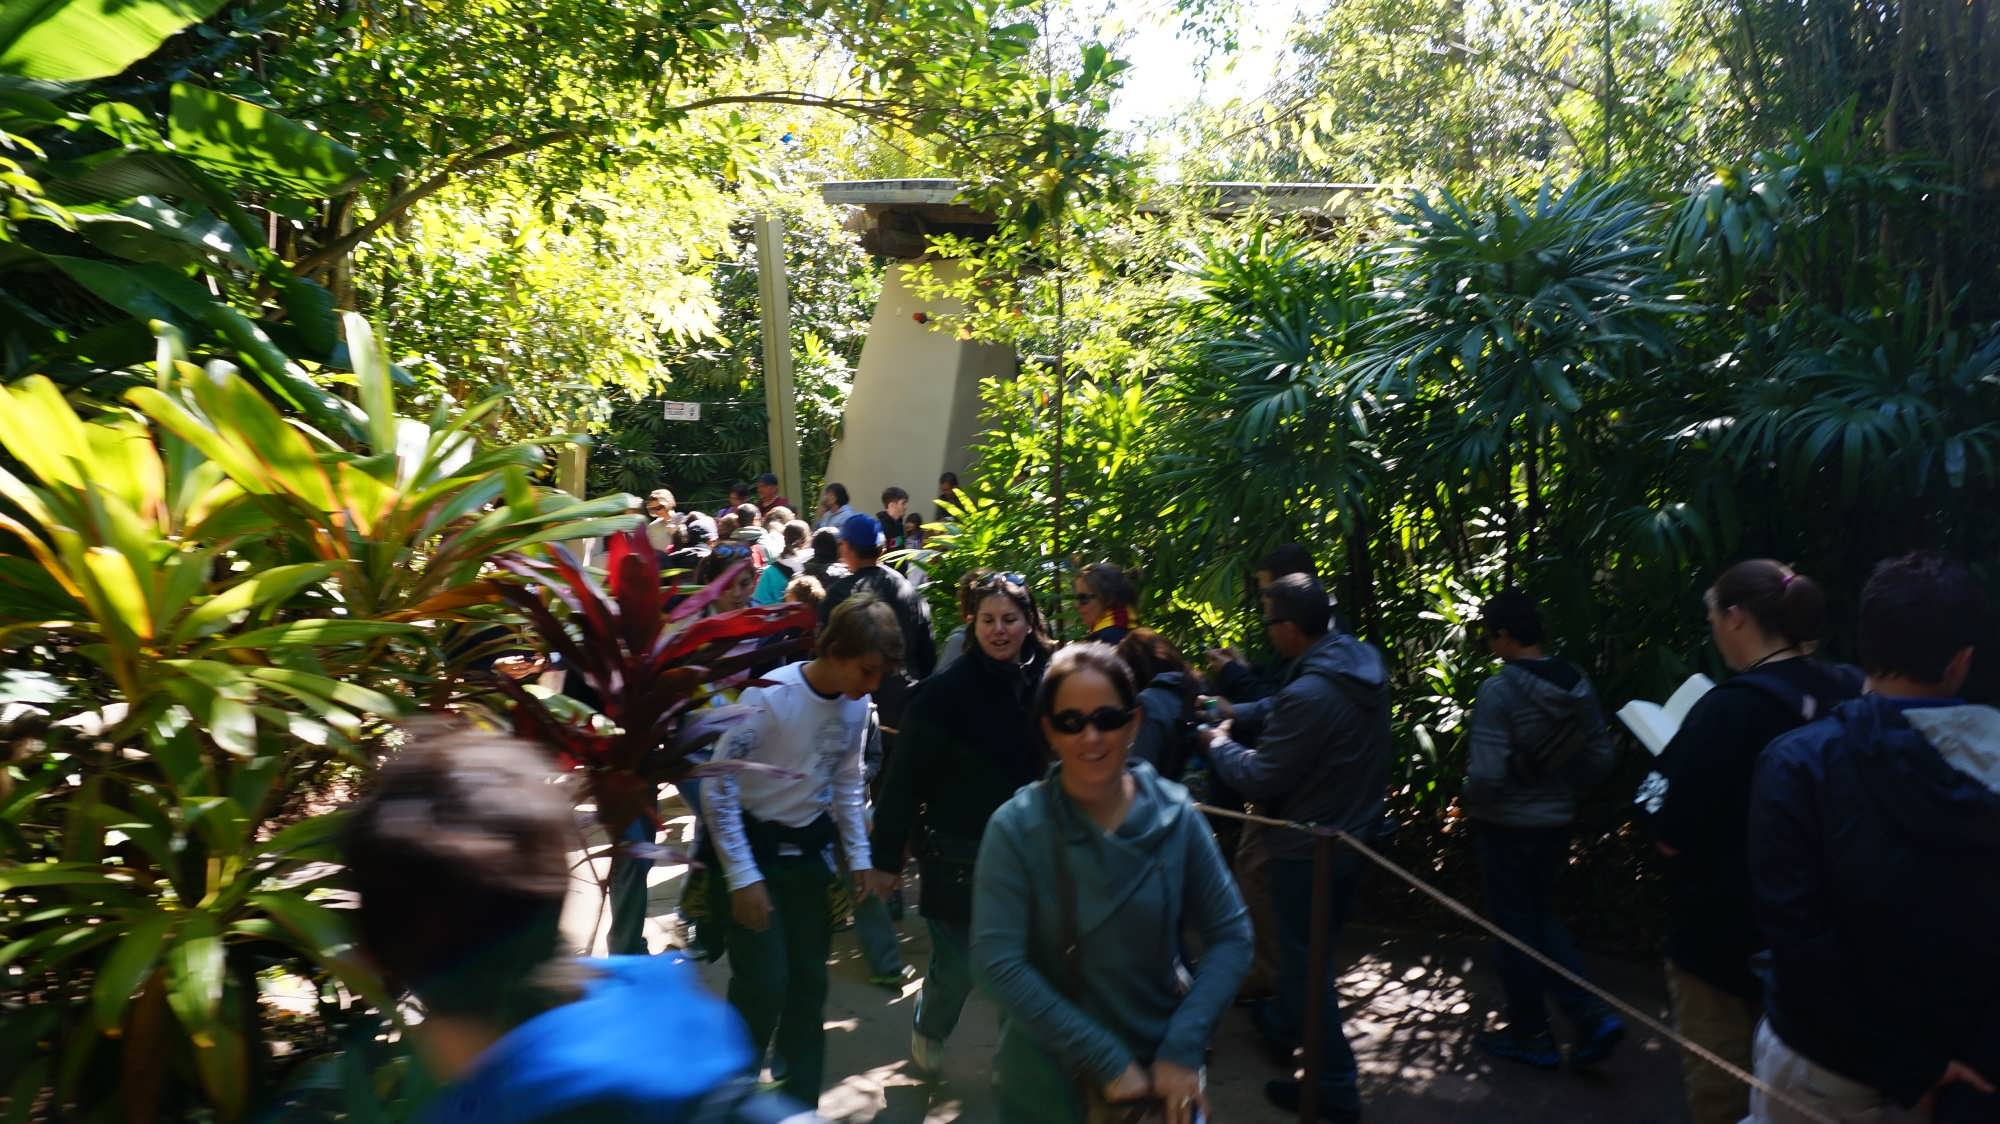 WWoHP return ticket line in Jurassic Park